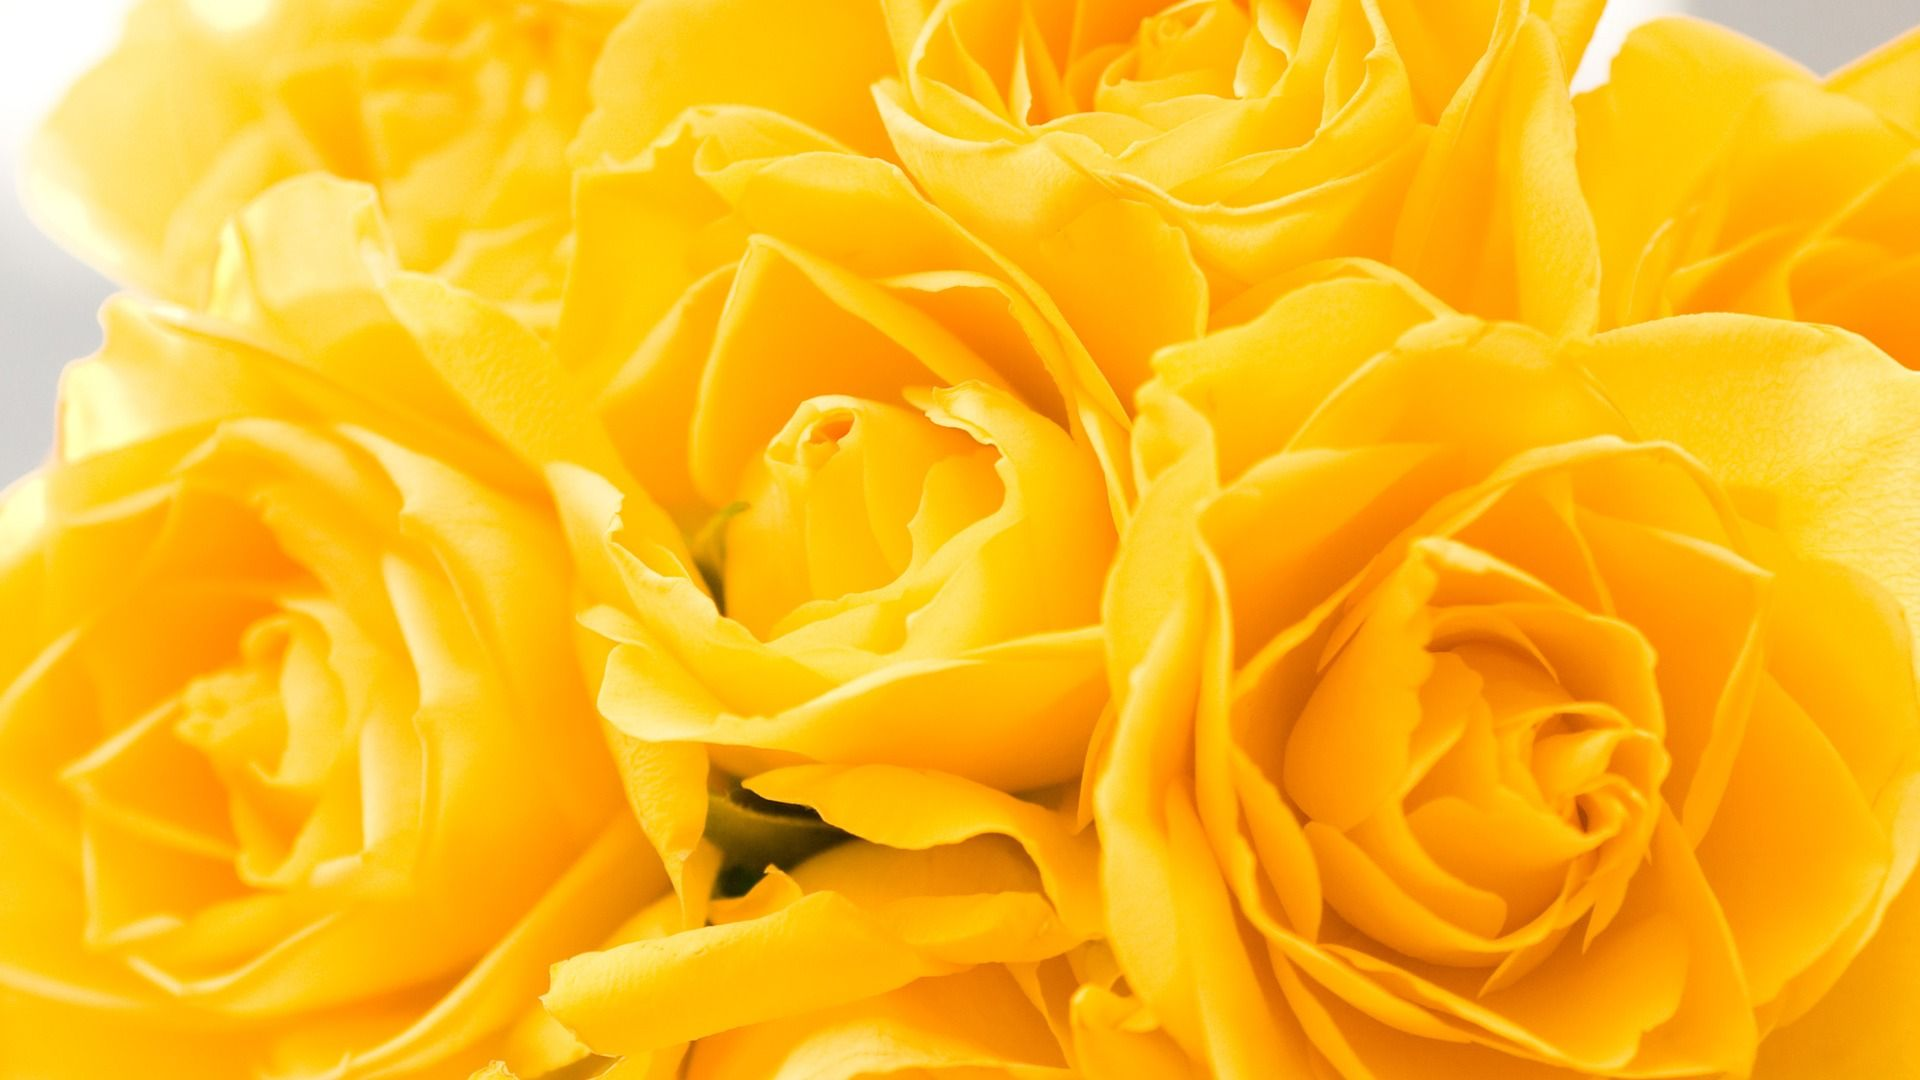 Yellow Roses - Yellow Flowers Hd , HD Wallpaper & Backgrounds